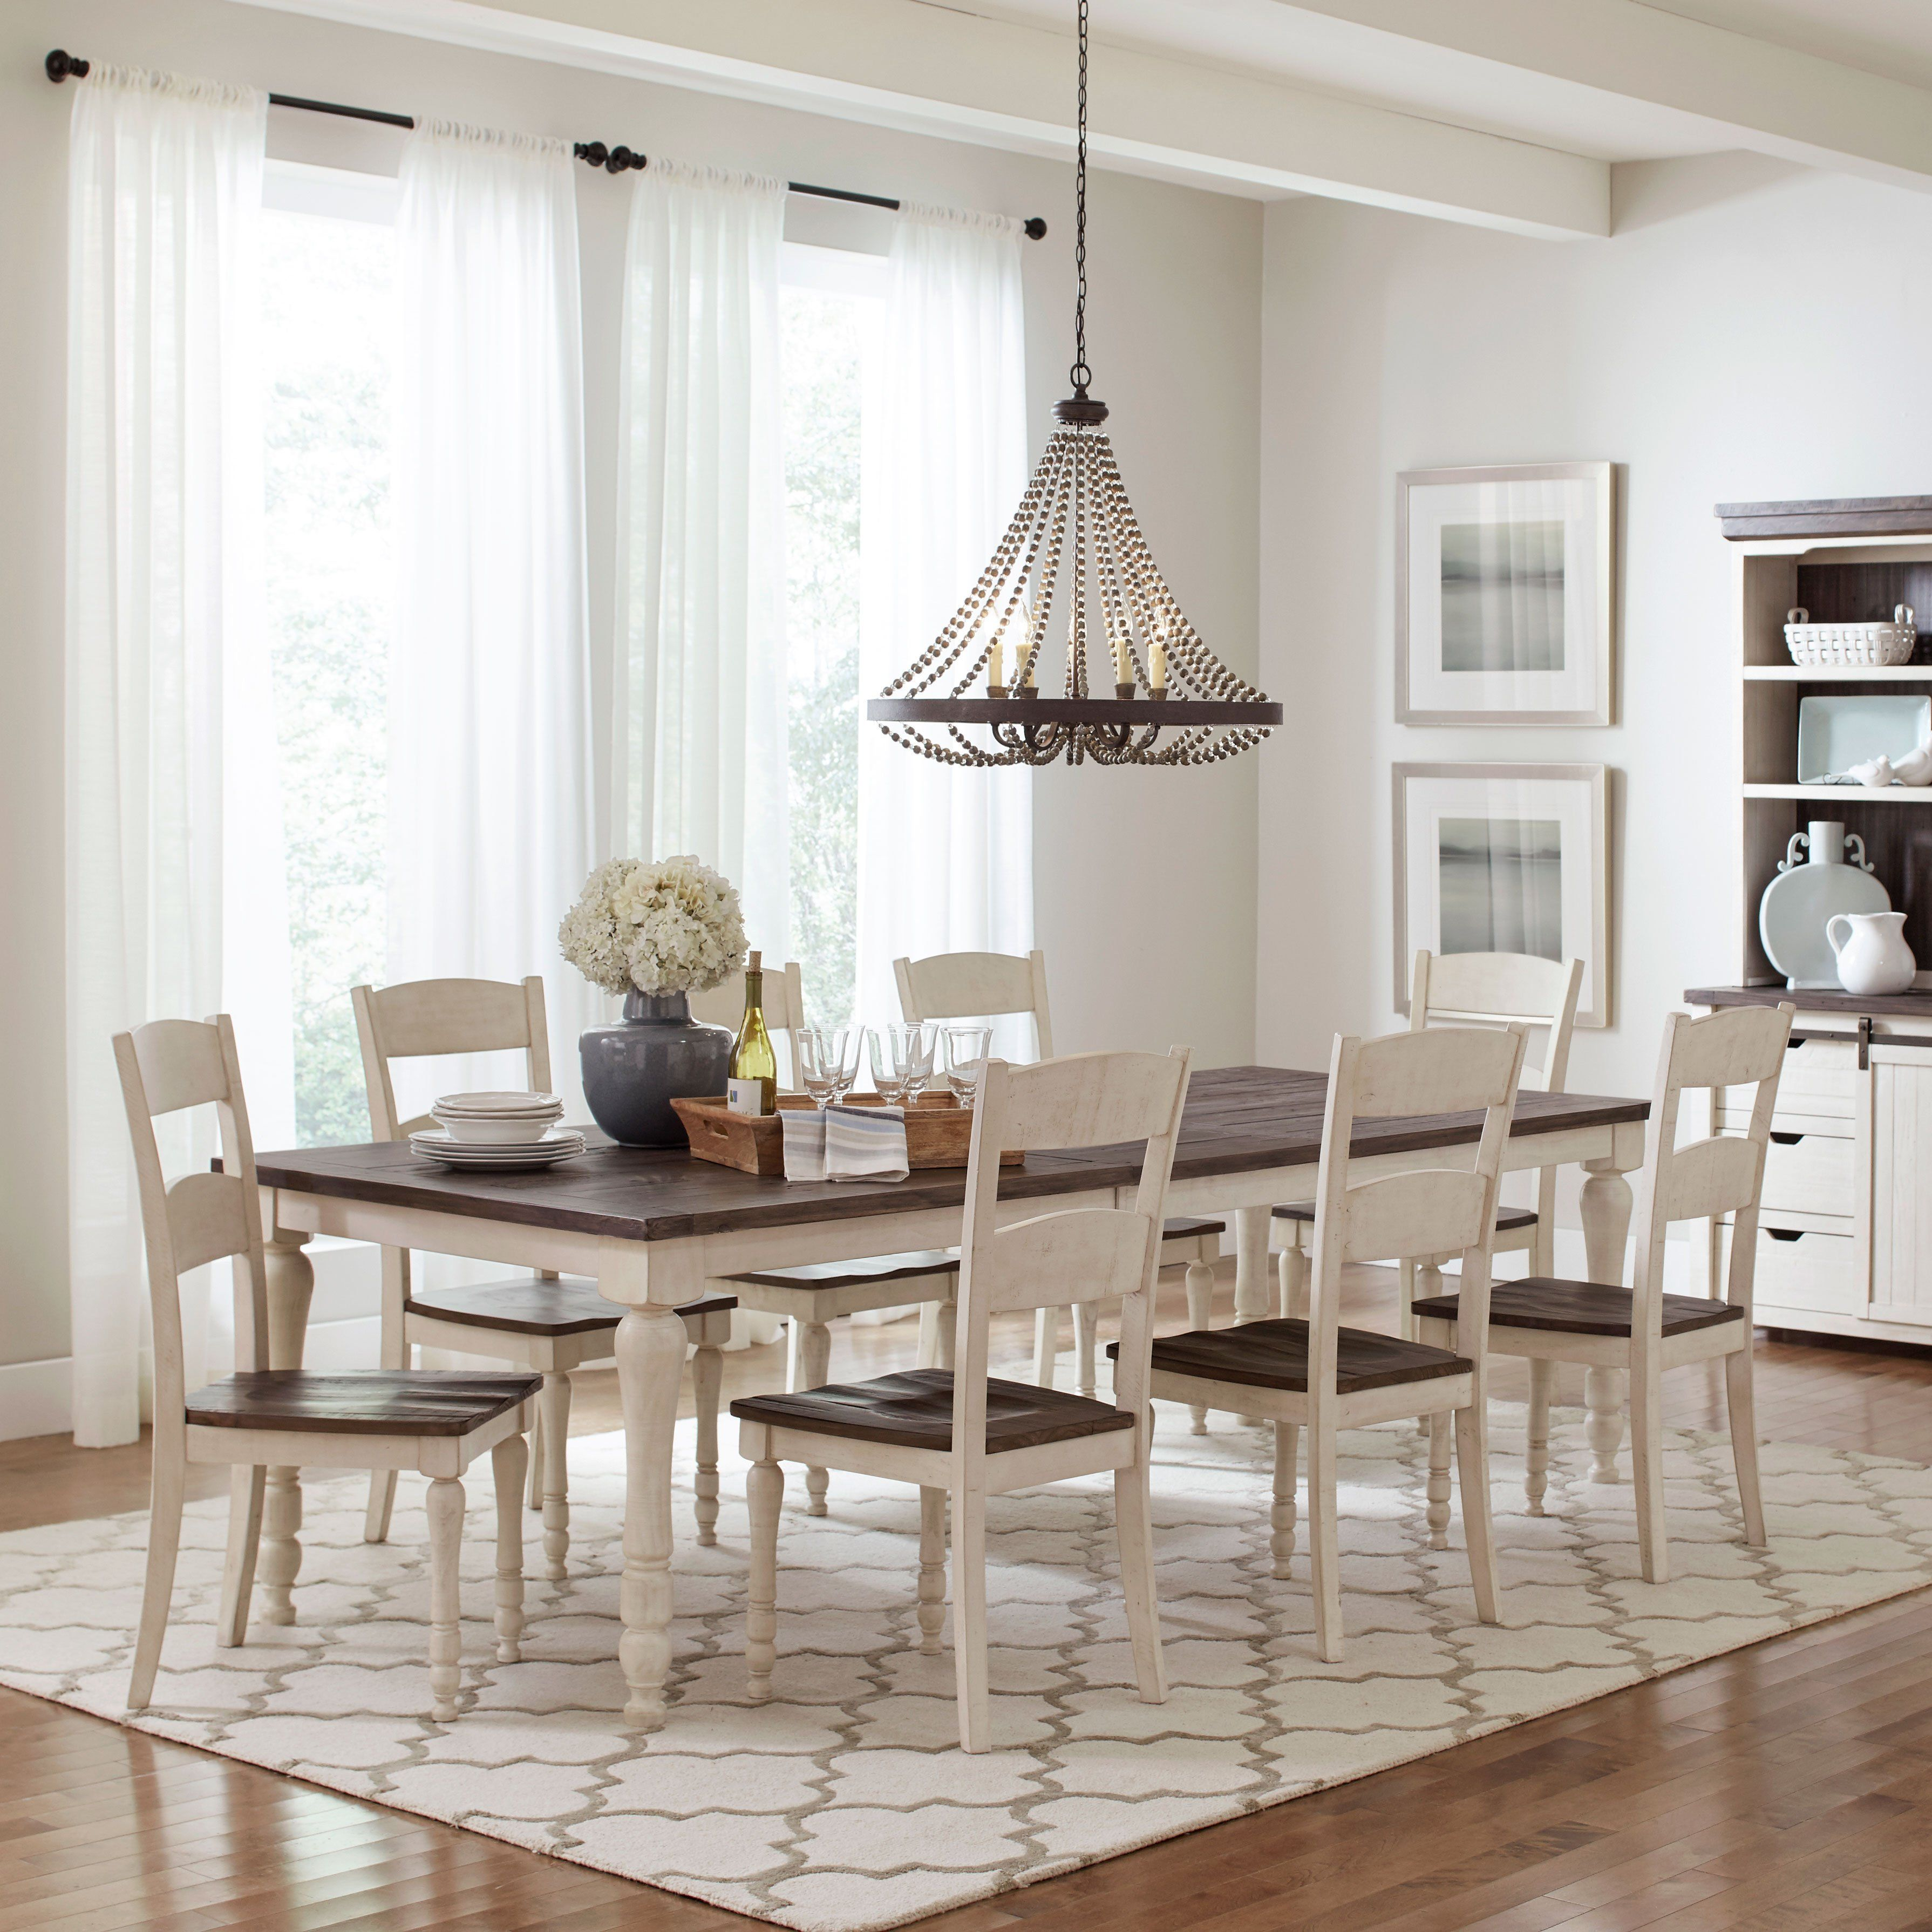 24++ White vintage dining table Top